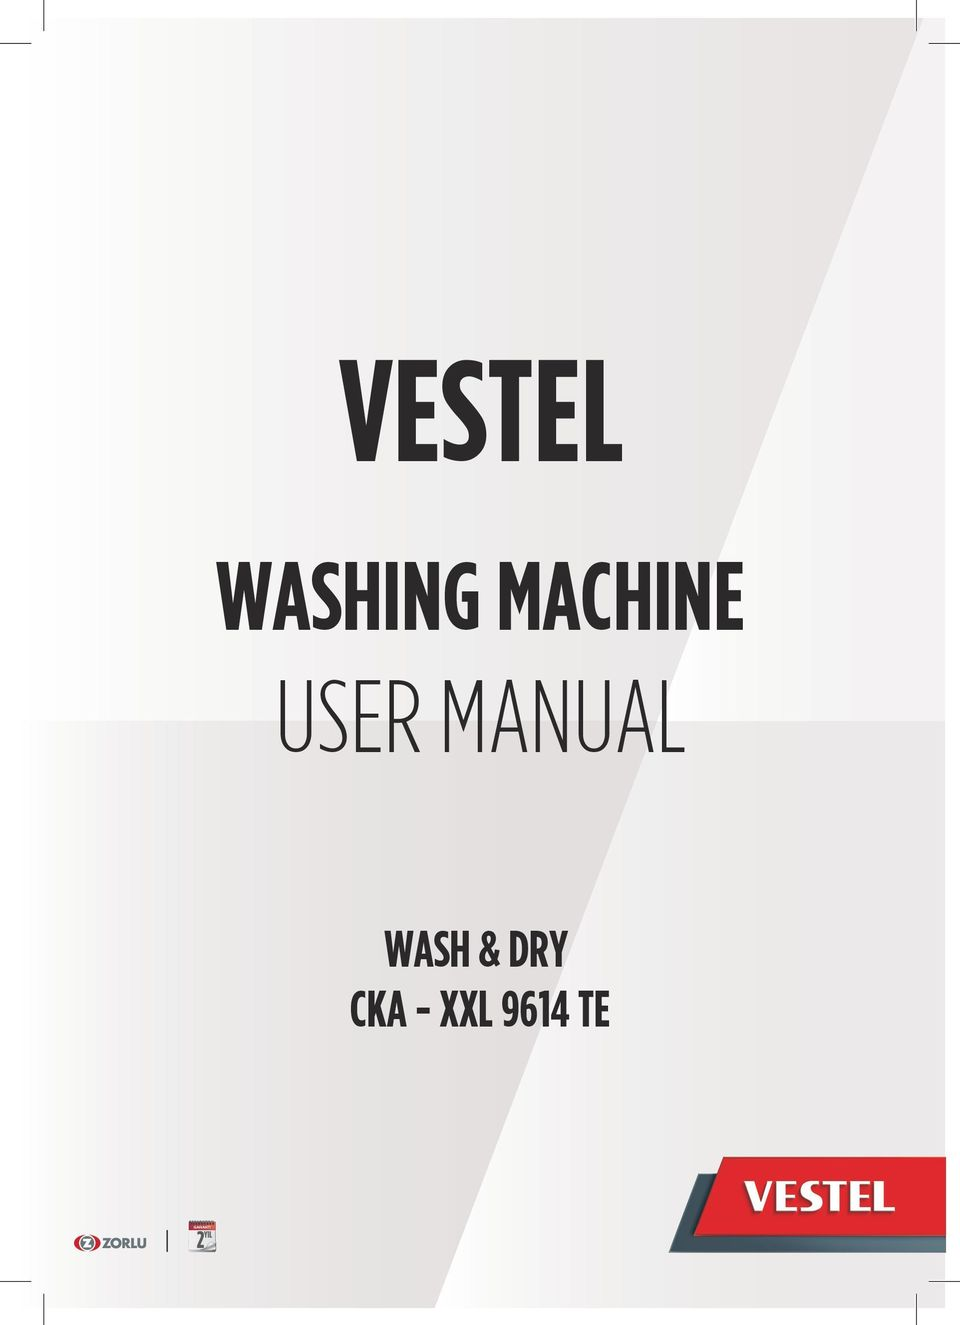 Vestel user manual washing machine wash dry cka xxl 9614 te pdf 2 contents before using your machine correct use general warnings safety warnings burn risk electrocution risk flooding risk explosion risk fire buycottarizona